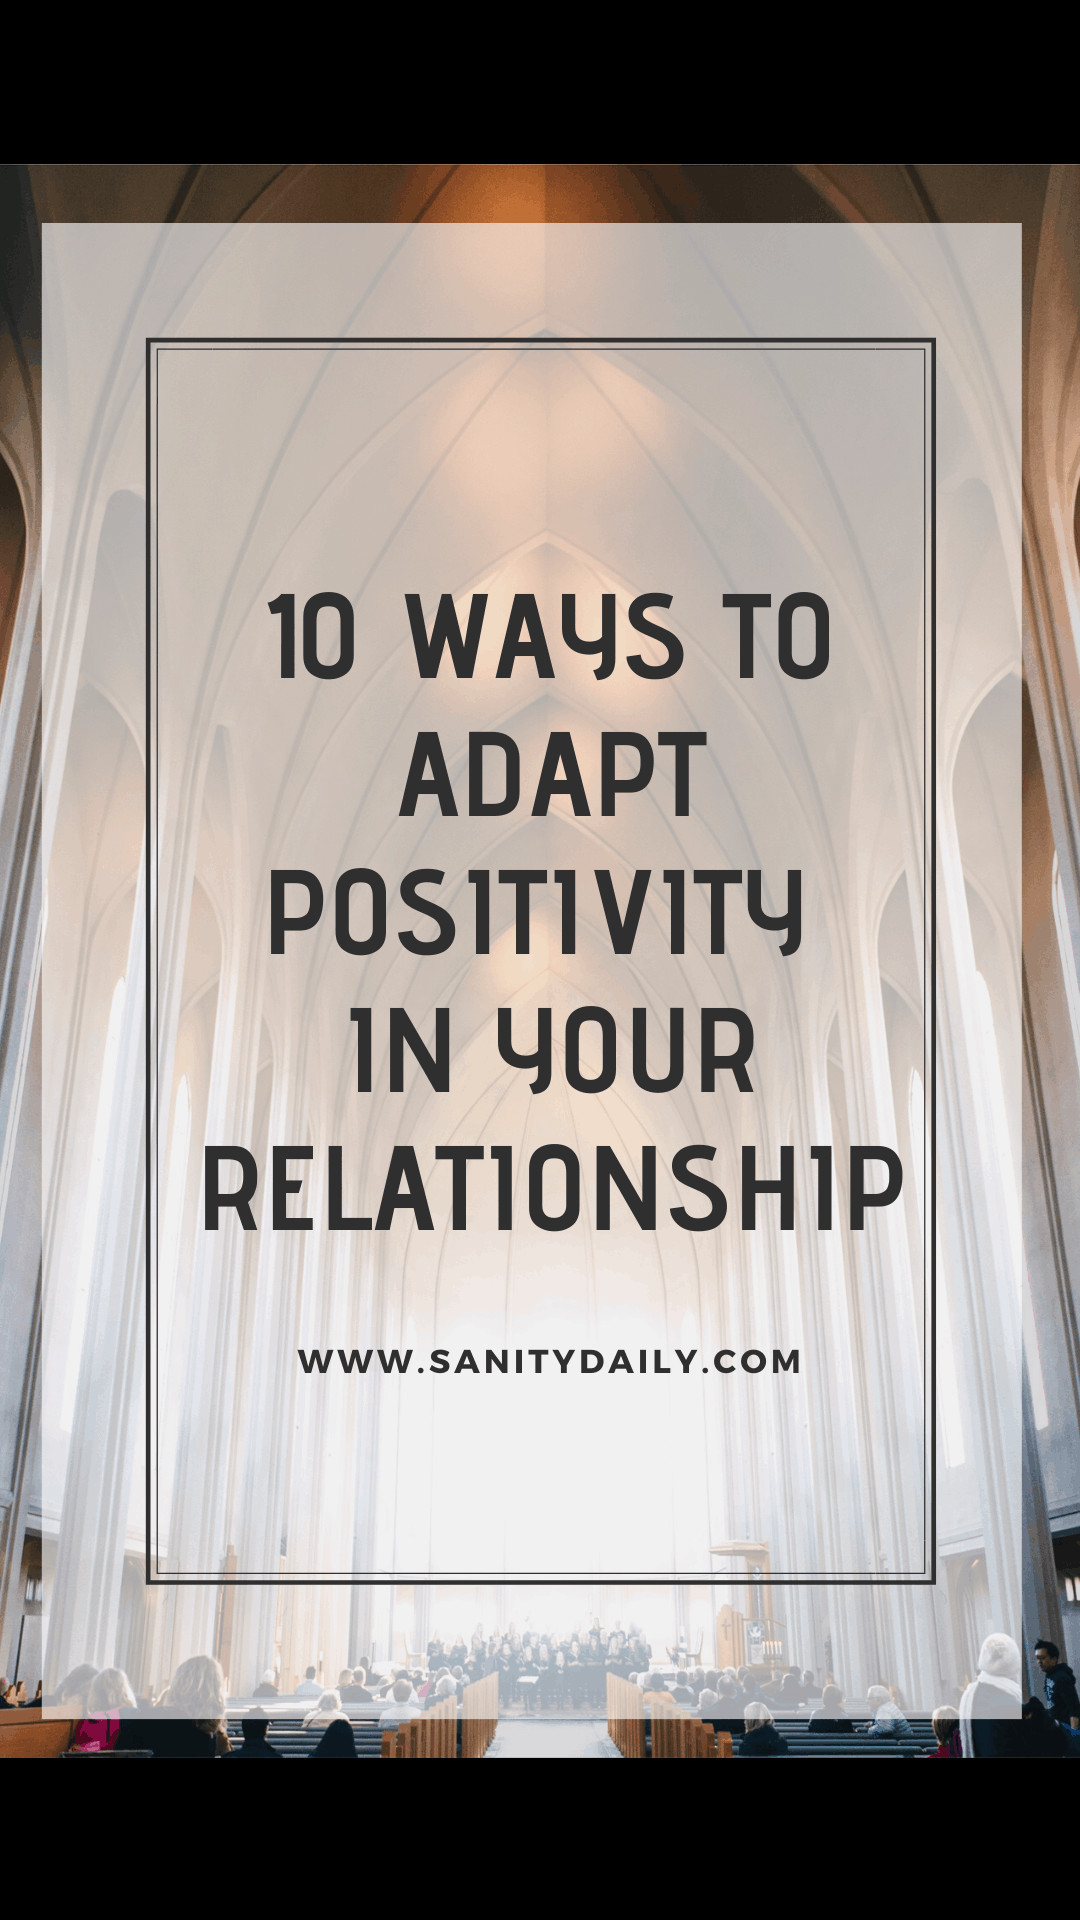 Saving your relationship with positivity